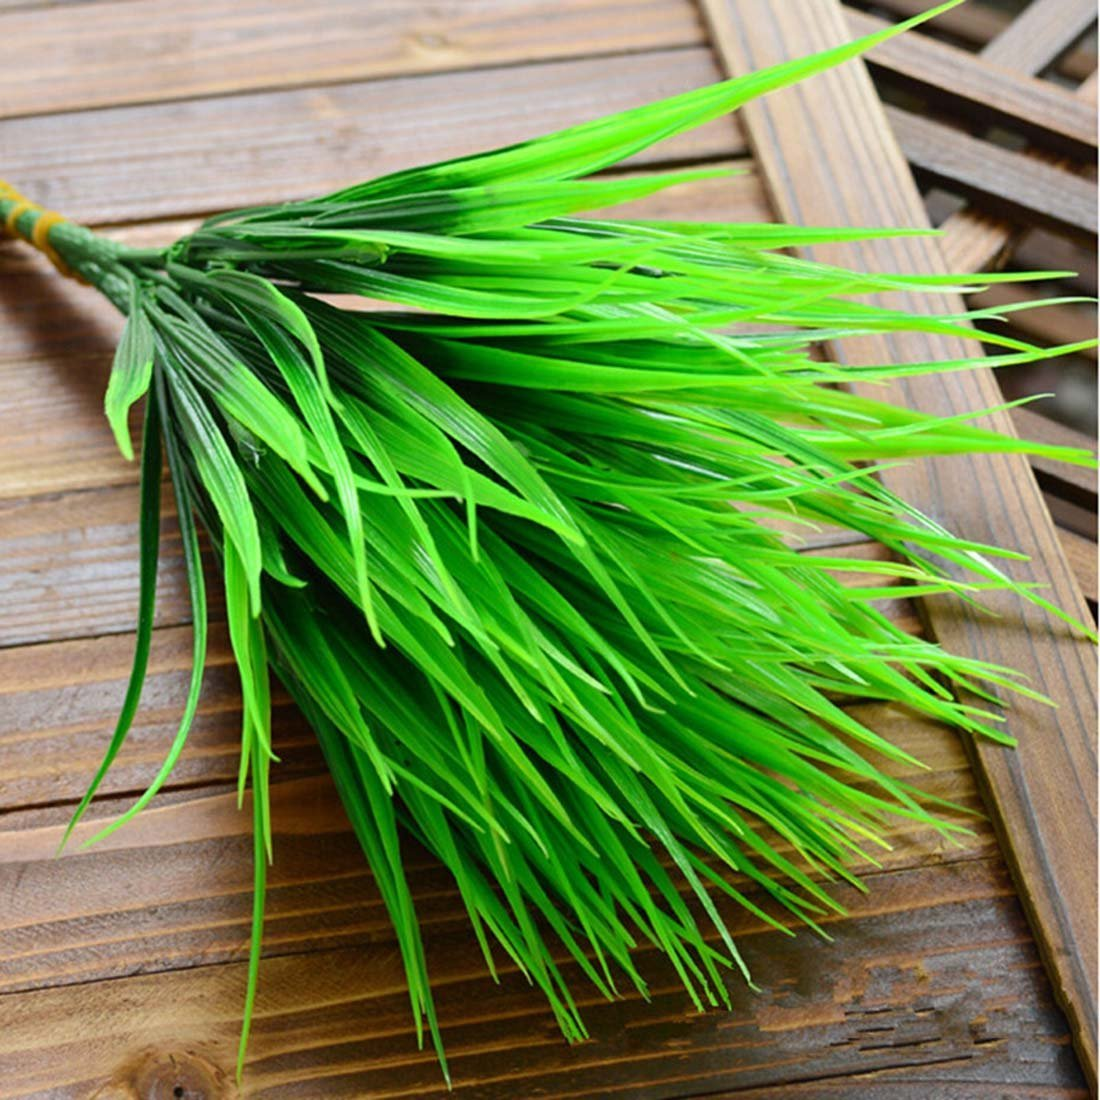 7-fork Green Grass Artificial Plants For Plastic Flowers Household Store Desk Rustic Clover Plant ASTrade LEPAZIK3457